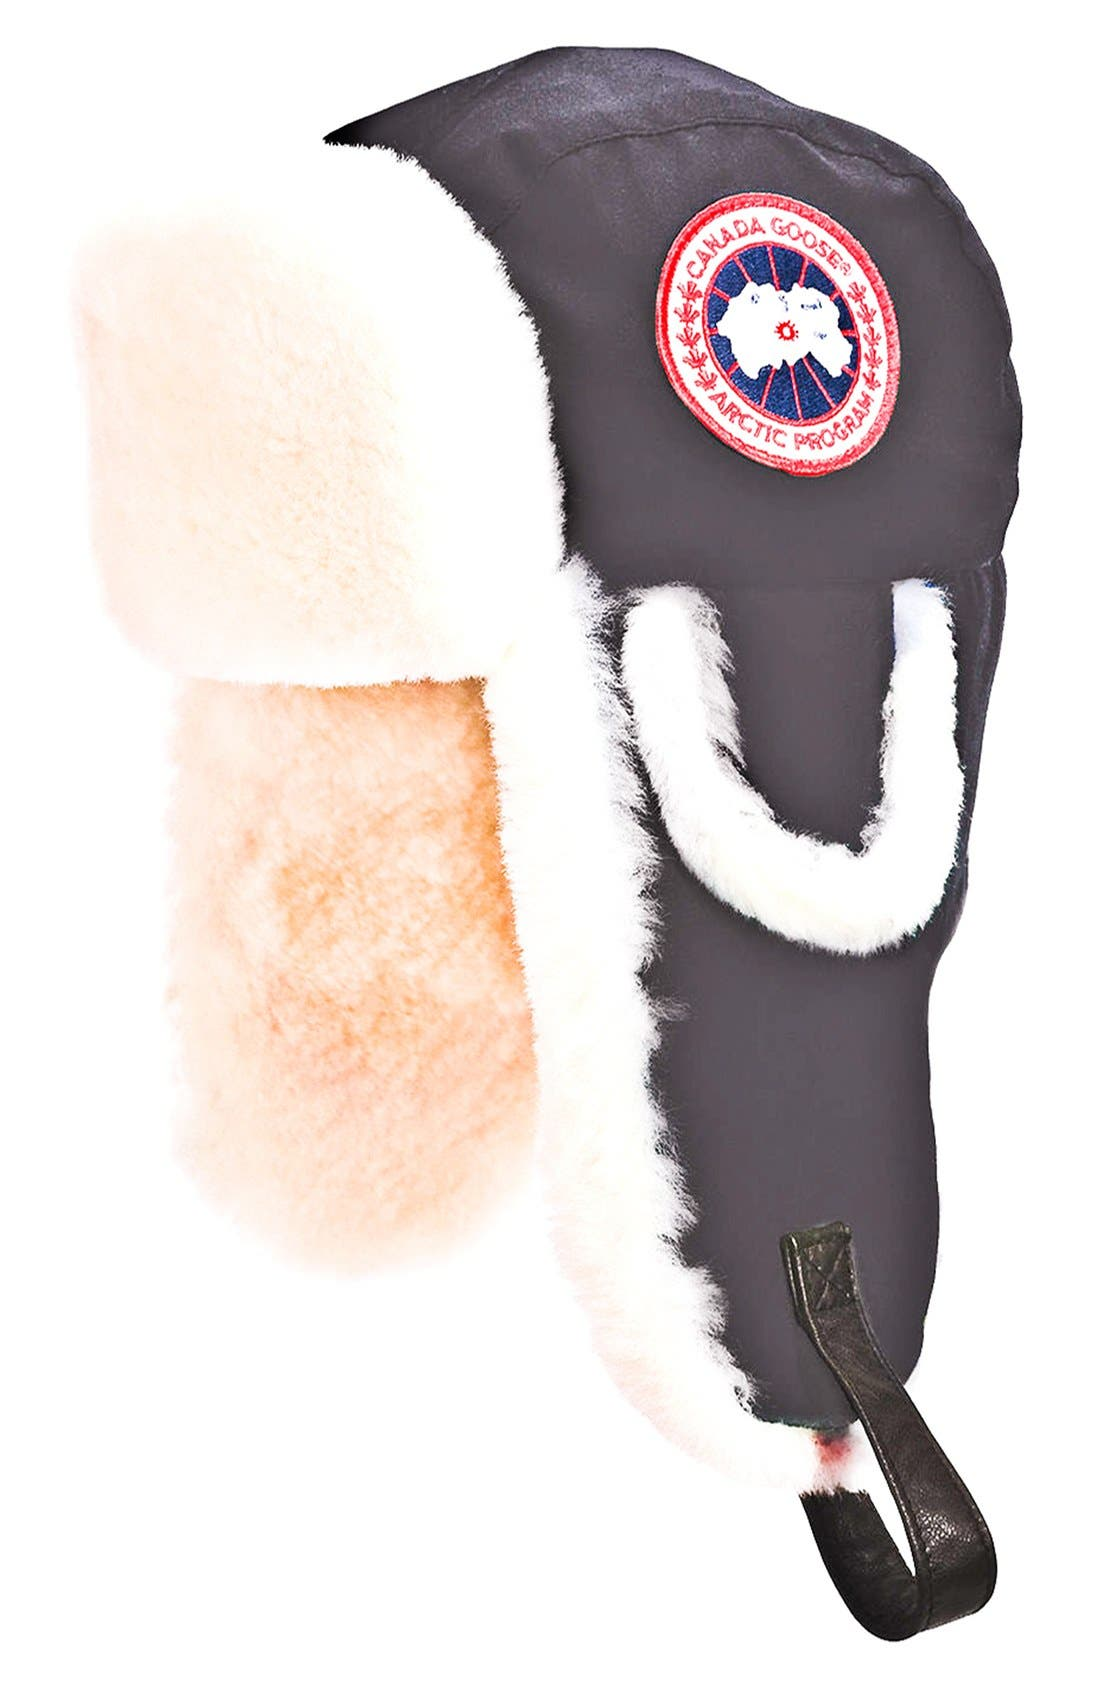 Alternate Image 1 Selected - Canada Goose 'Arctic' Tech Pilot Hat with Genuine Shearling Lining